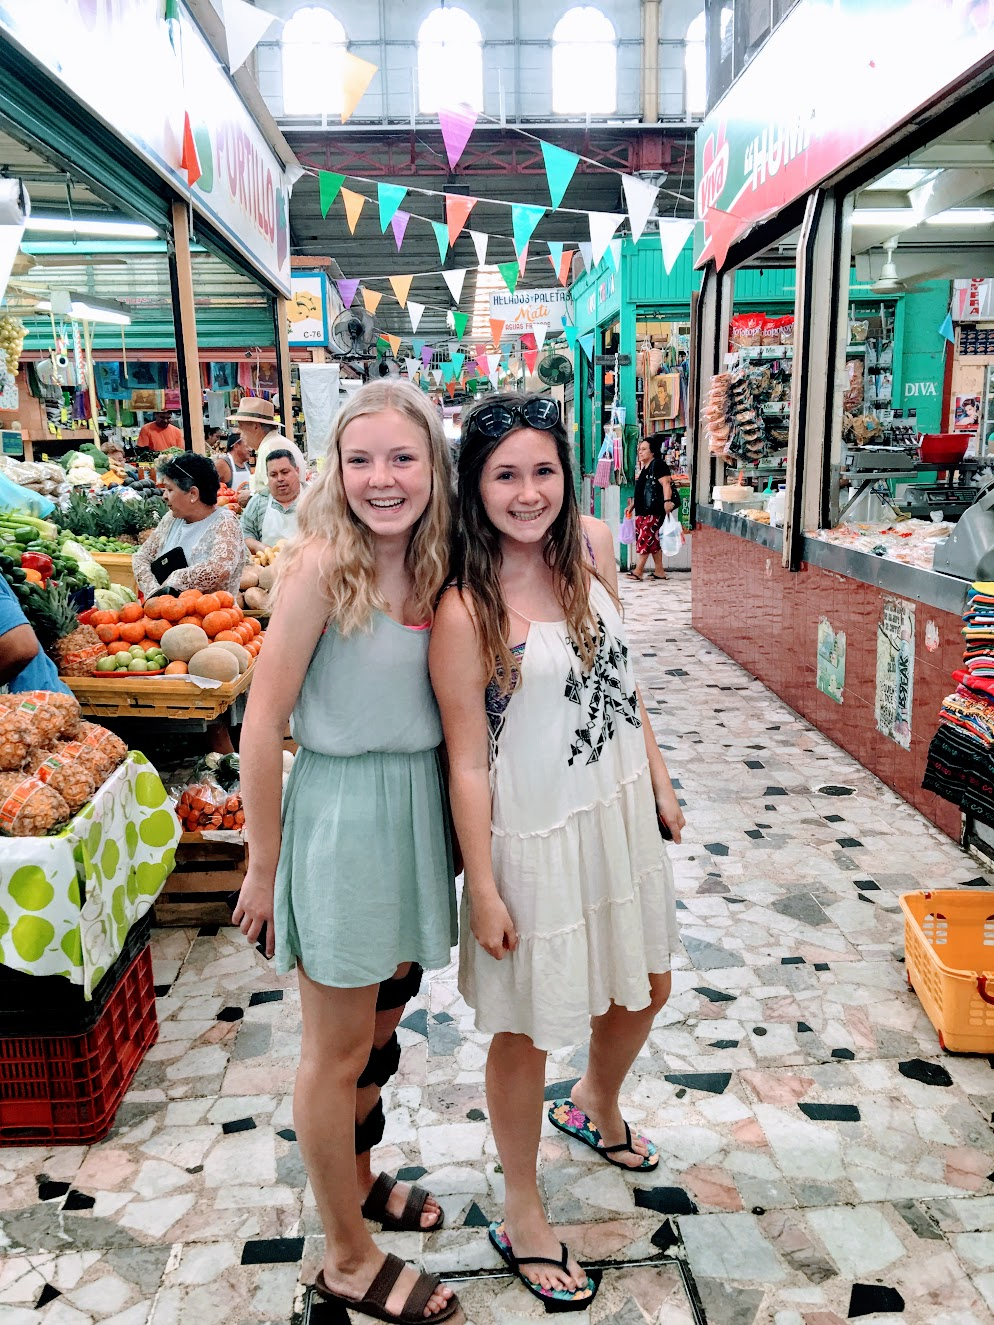 Exploring shops in Mazatlan